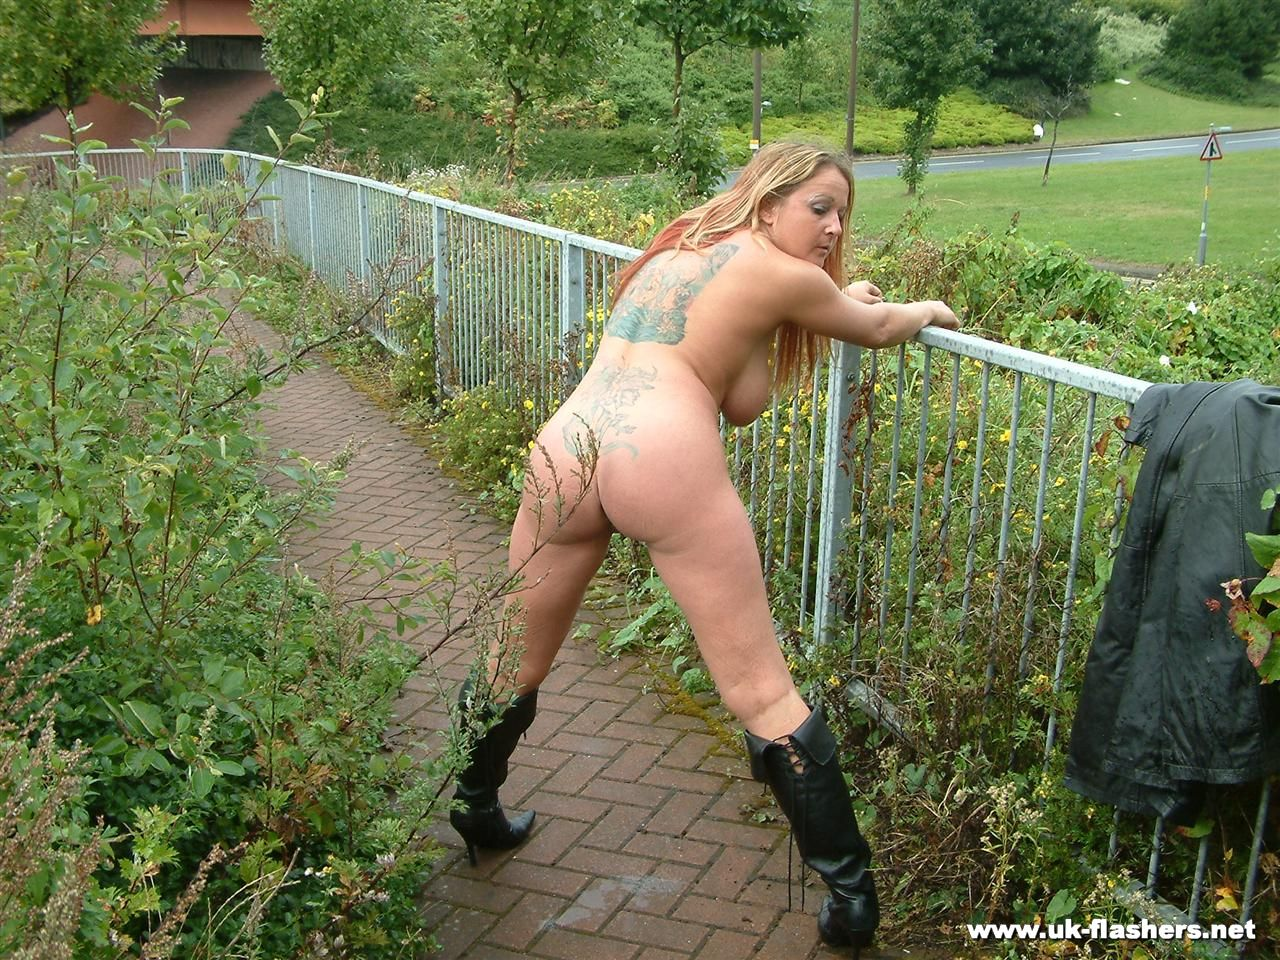 Public Nudity Films Nude In Videos Call Of Nature